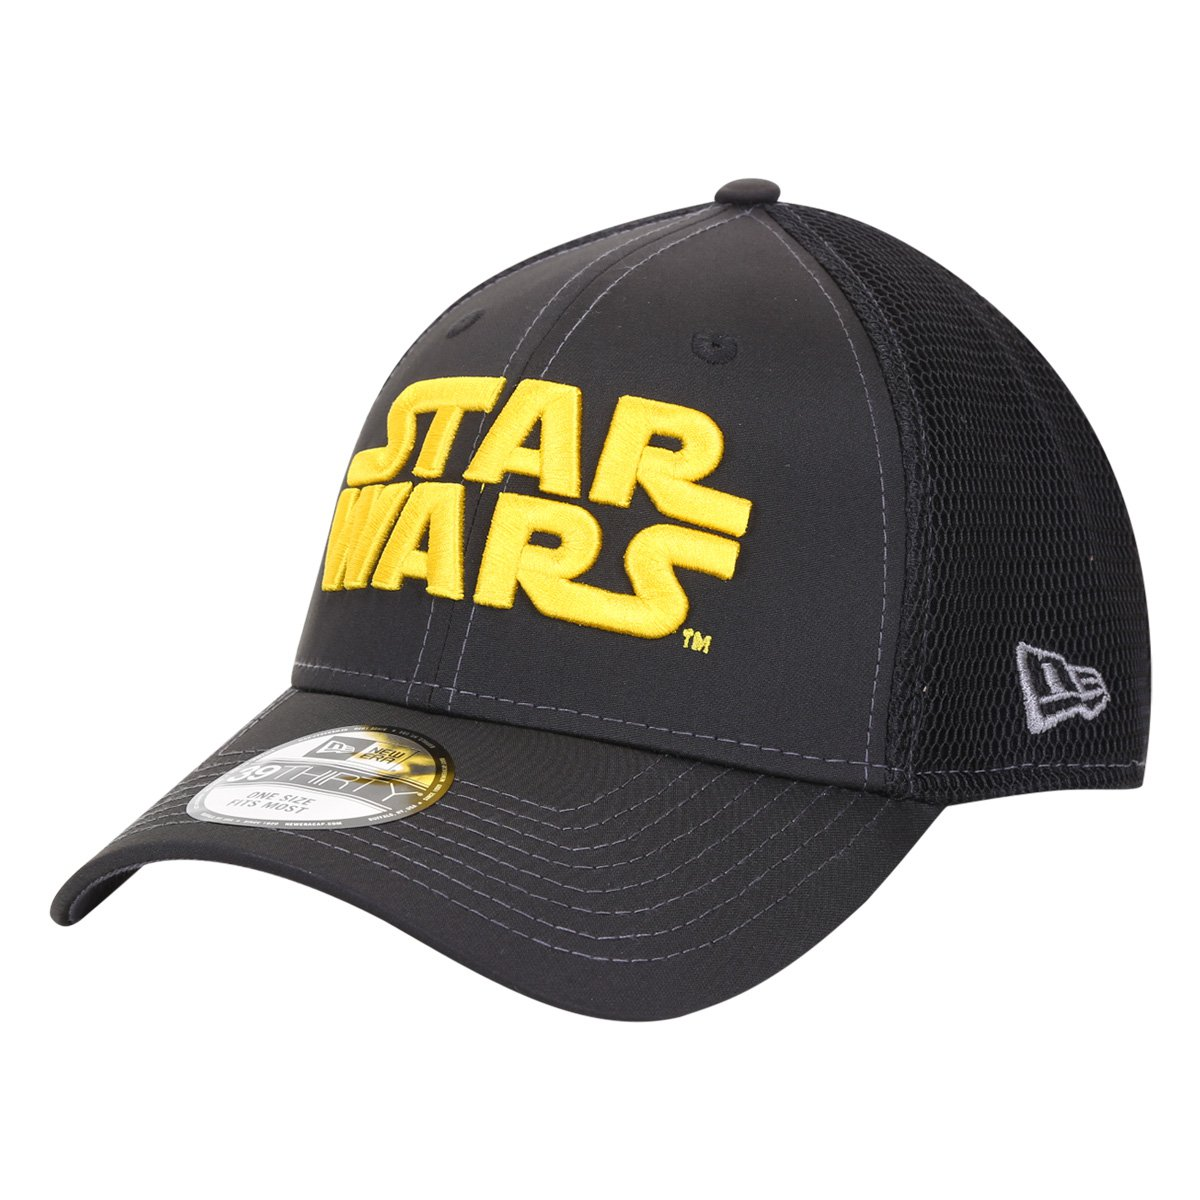 Boné New Era Aba Curva 39 Thirty Star Wars